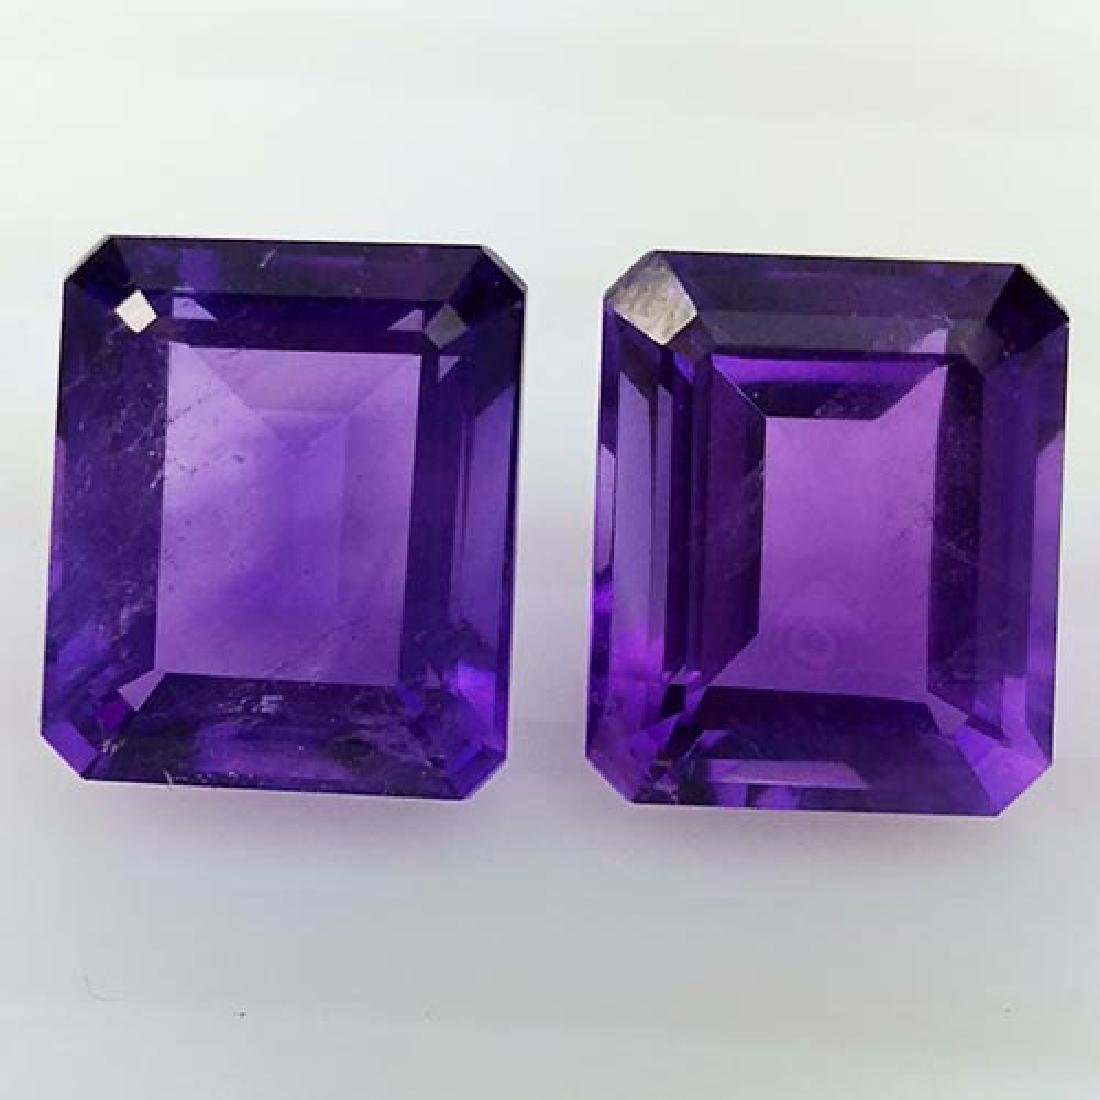 12.10Ct NATURAL STUNNING AMETHYST PAIR VVS QUALITY - 2